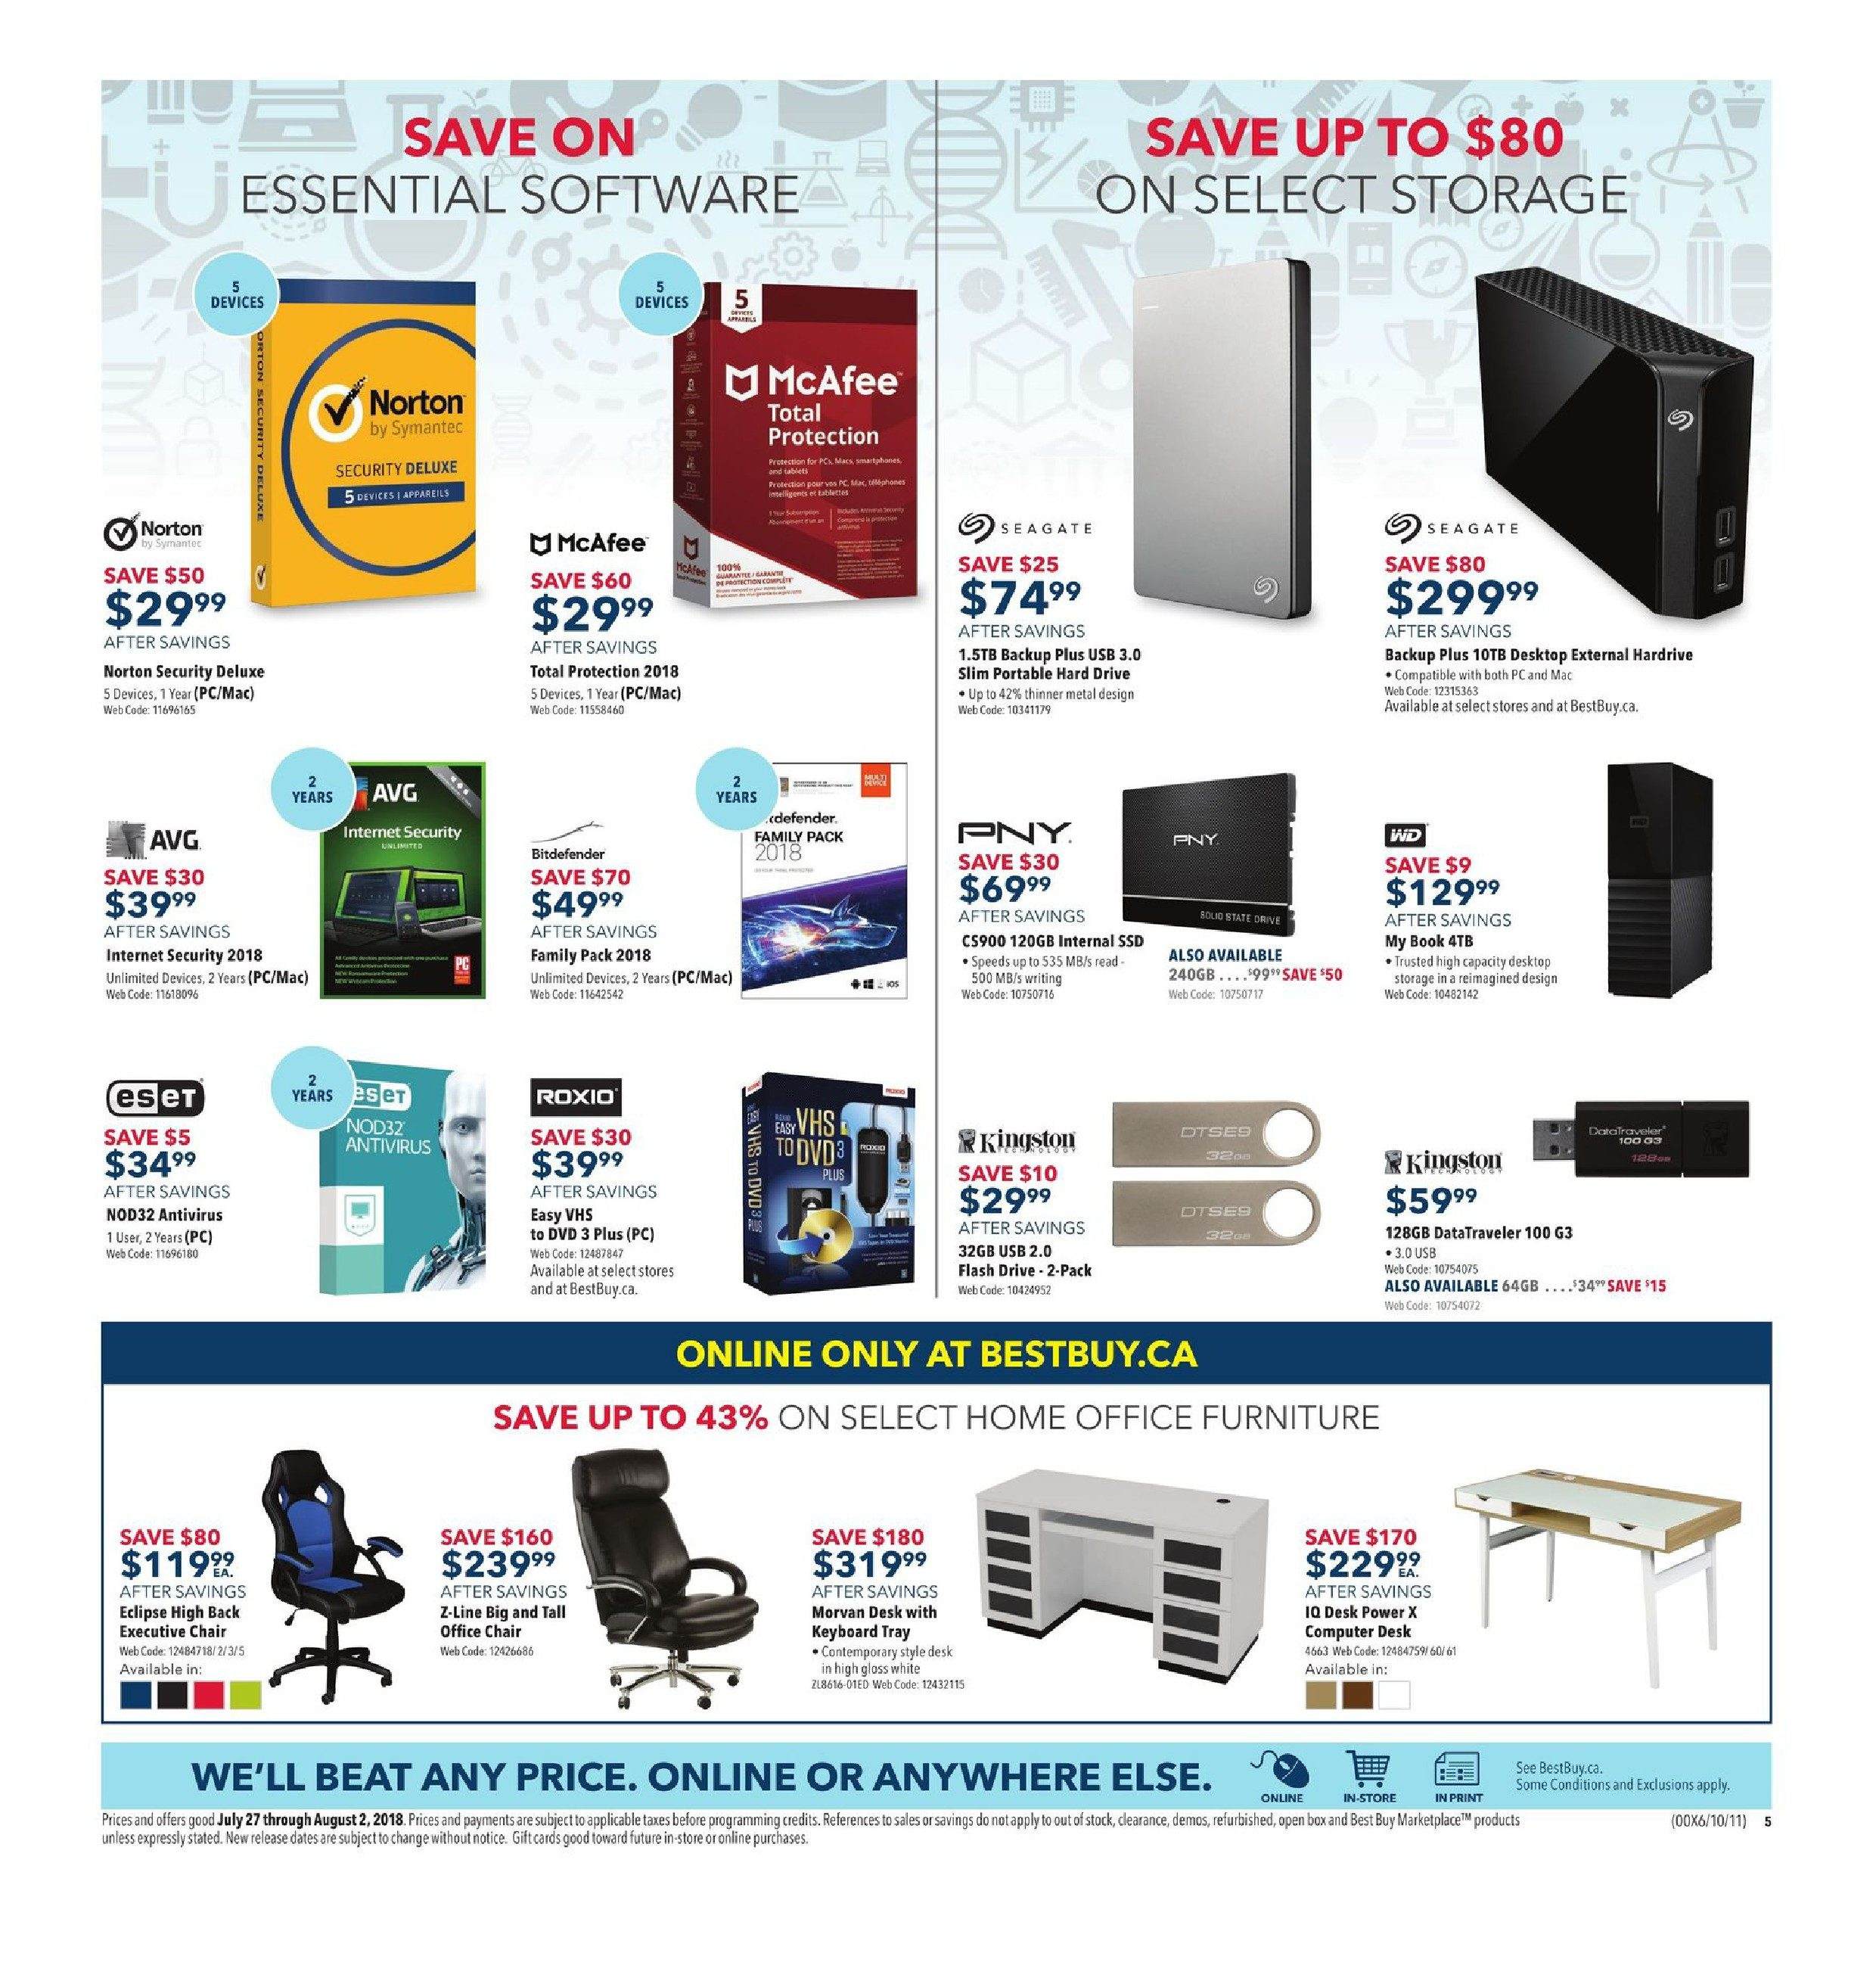 Best buy weekly flyer weekly rule back to school jul 27 aug best buy weekly flyer weekly rule back to school jul 27 aug 2 redflagdeals fandeluxe Image collections